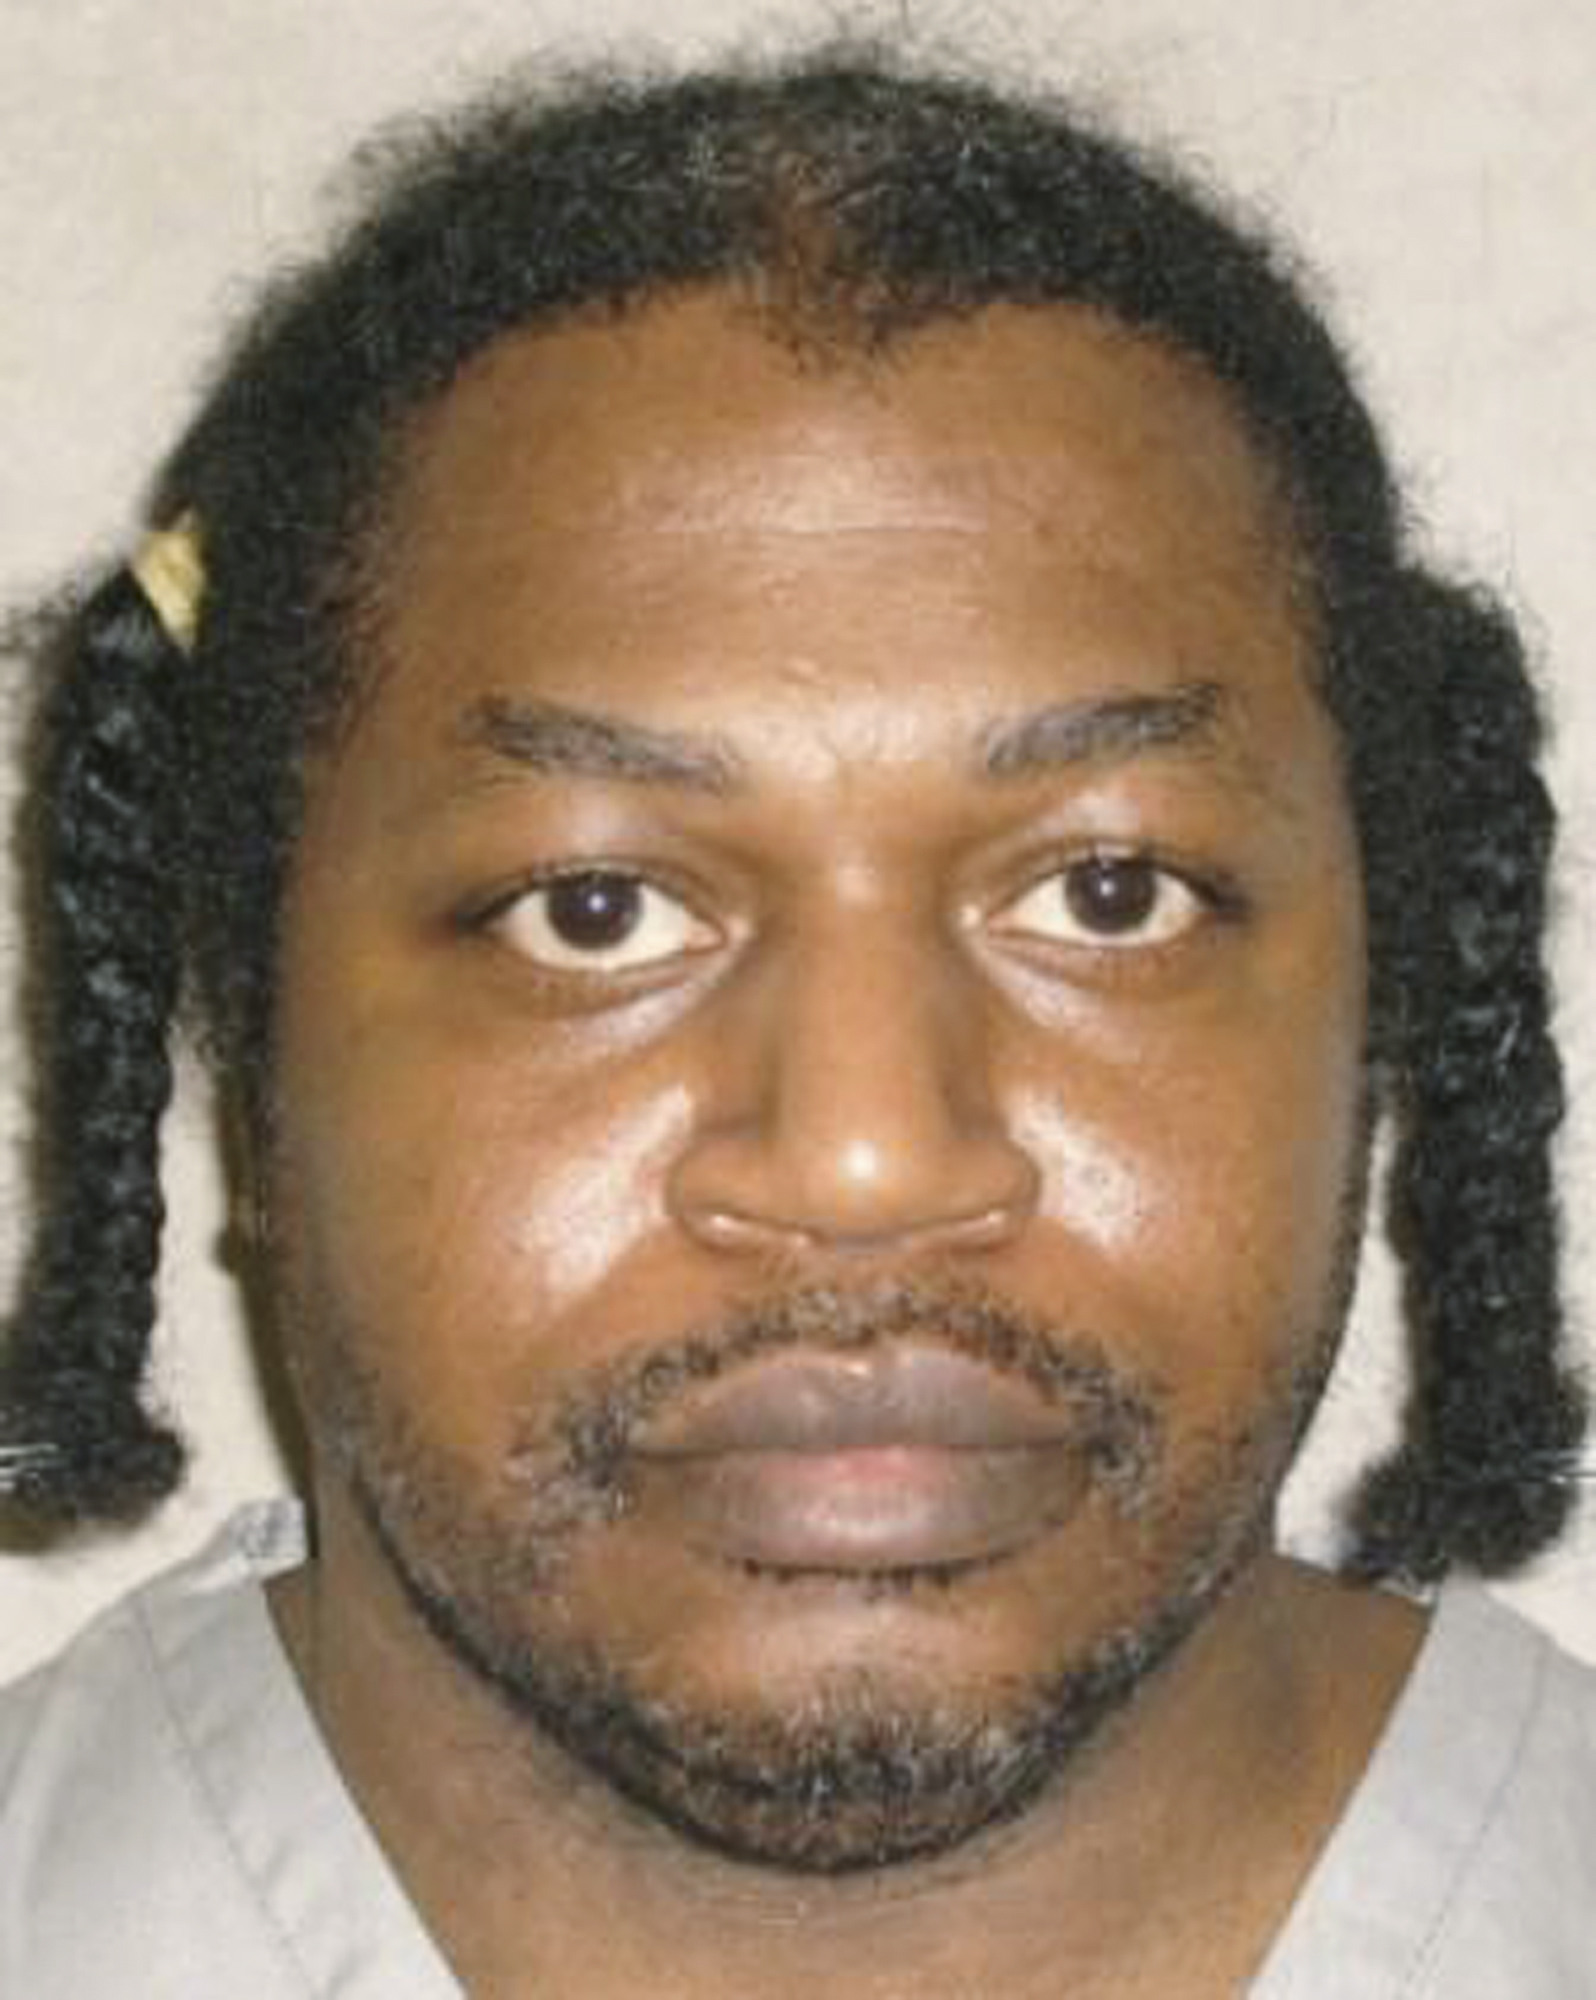 Oklahoma Executes An Inmate For 1st Time Since Lethal Injection Disaster